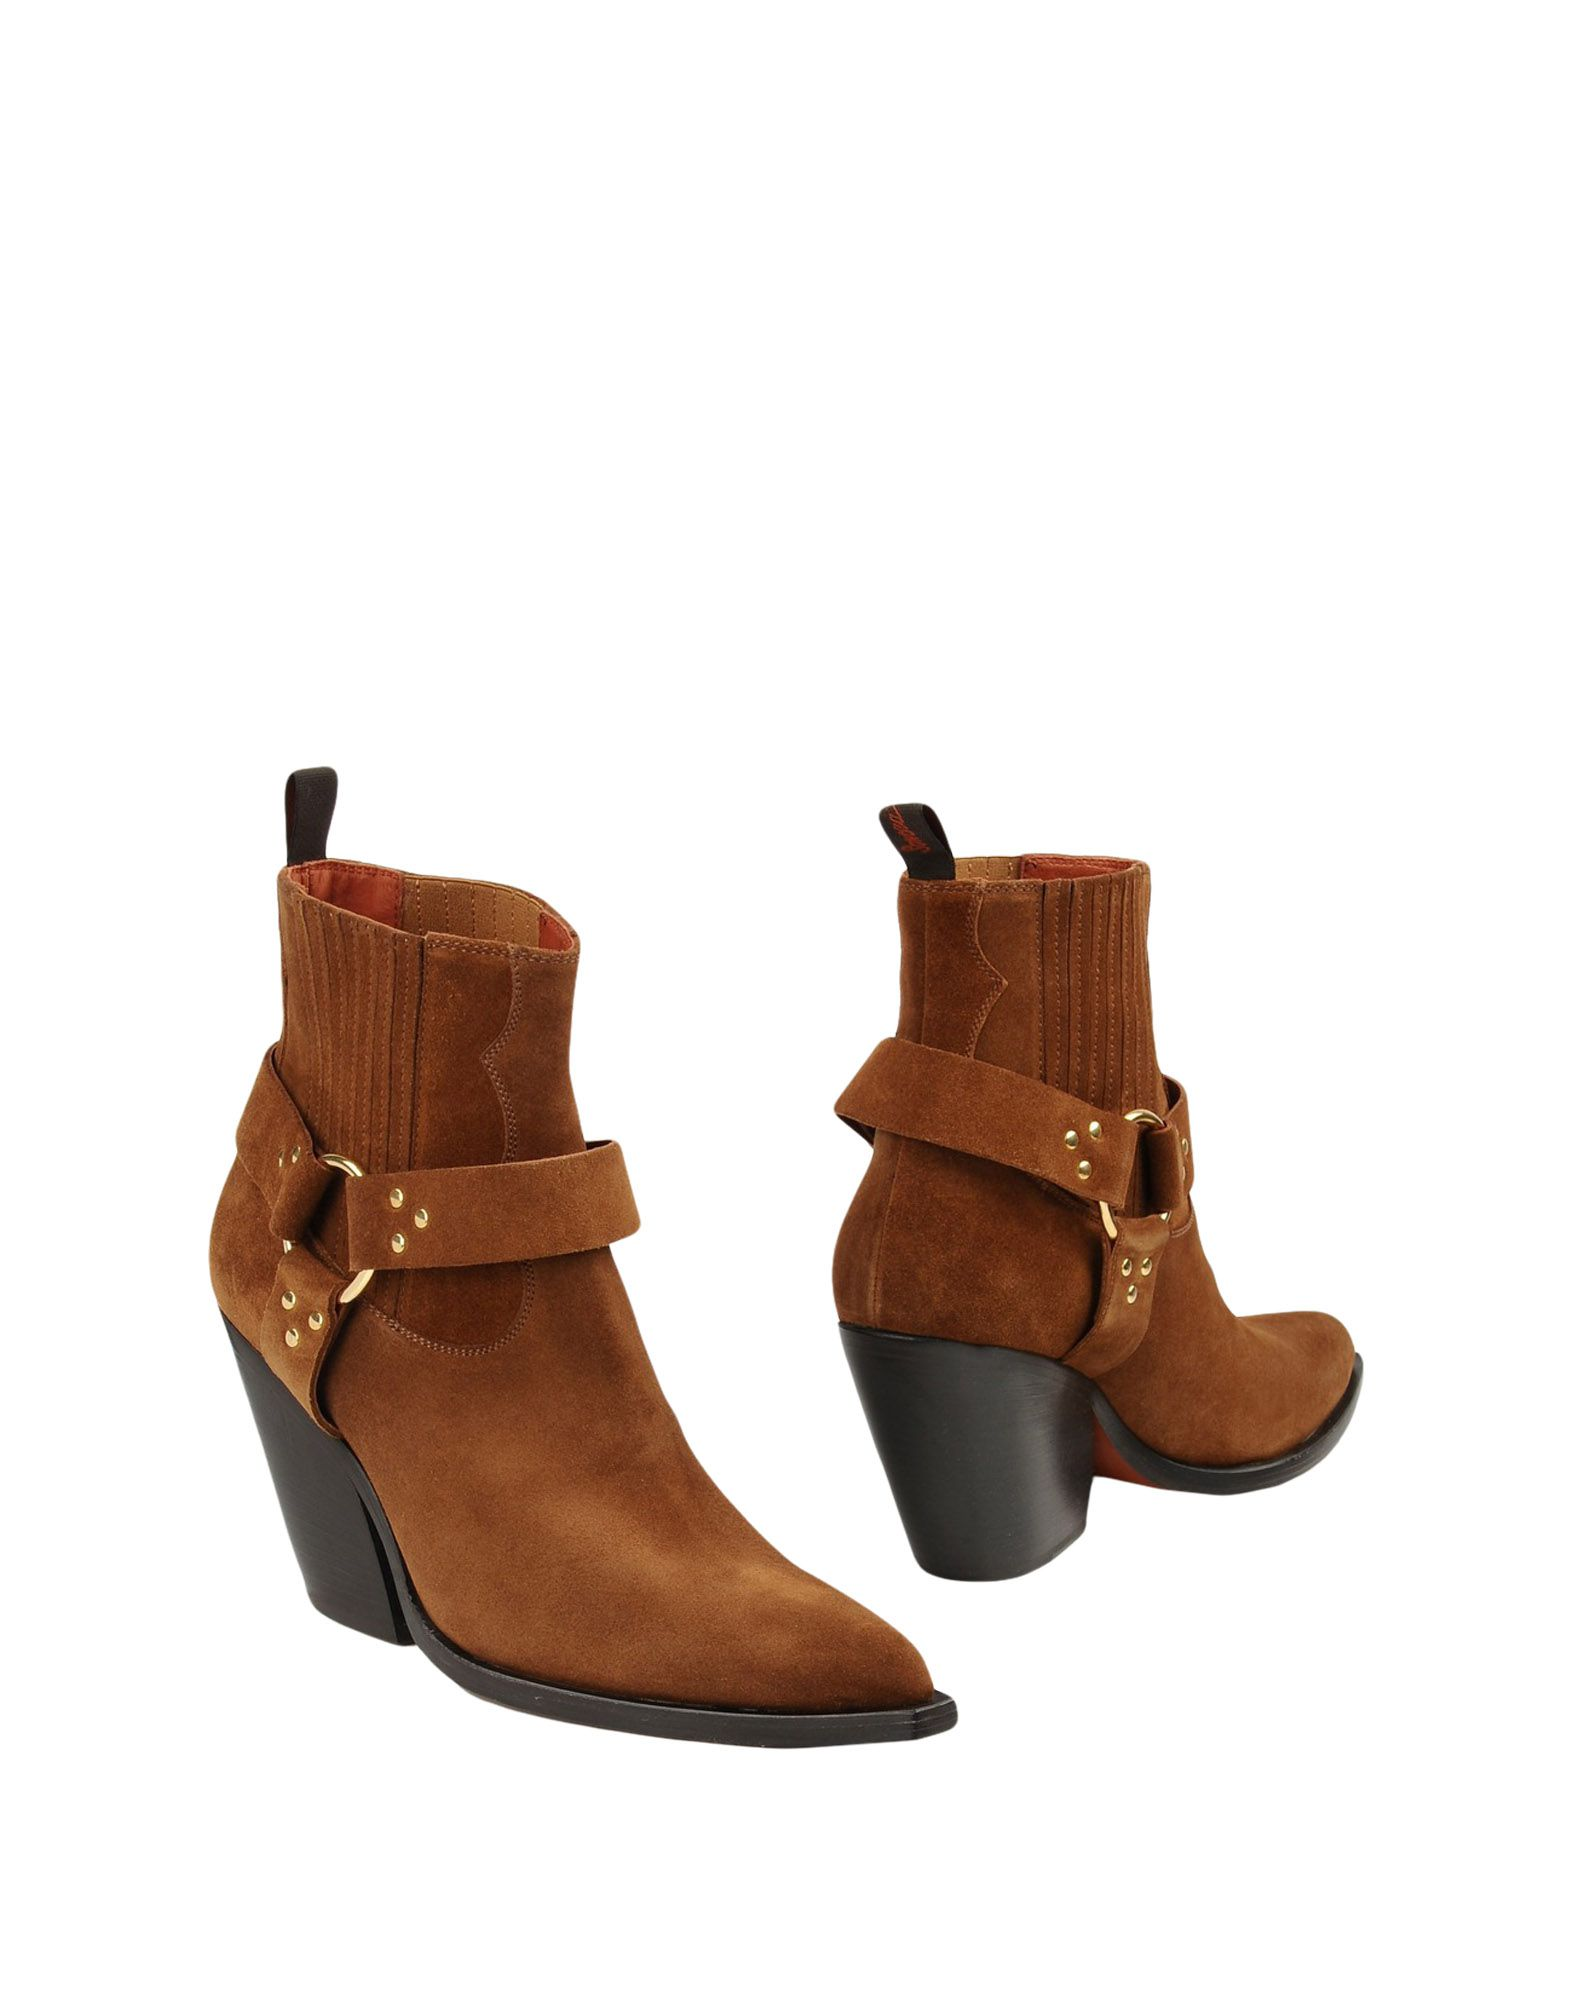 SONORA Ankle Boots in Brown